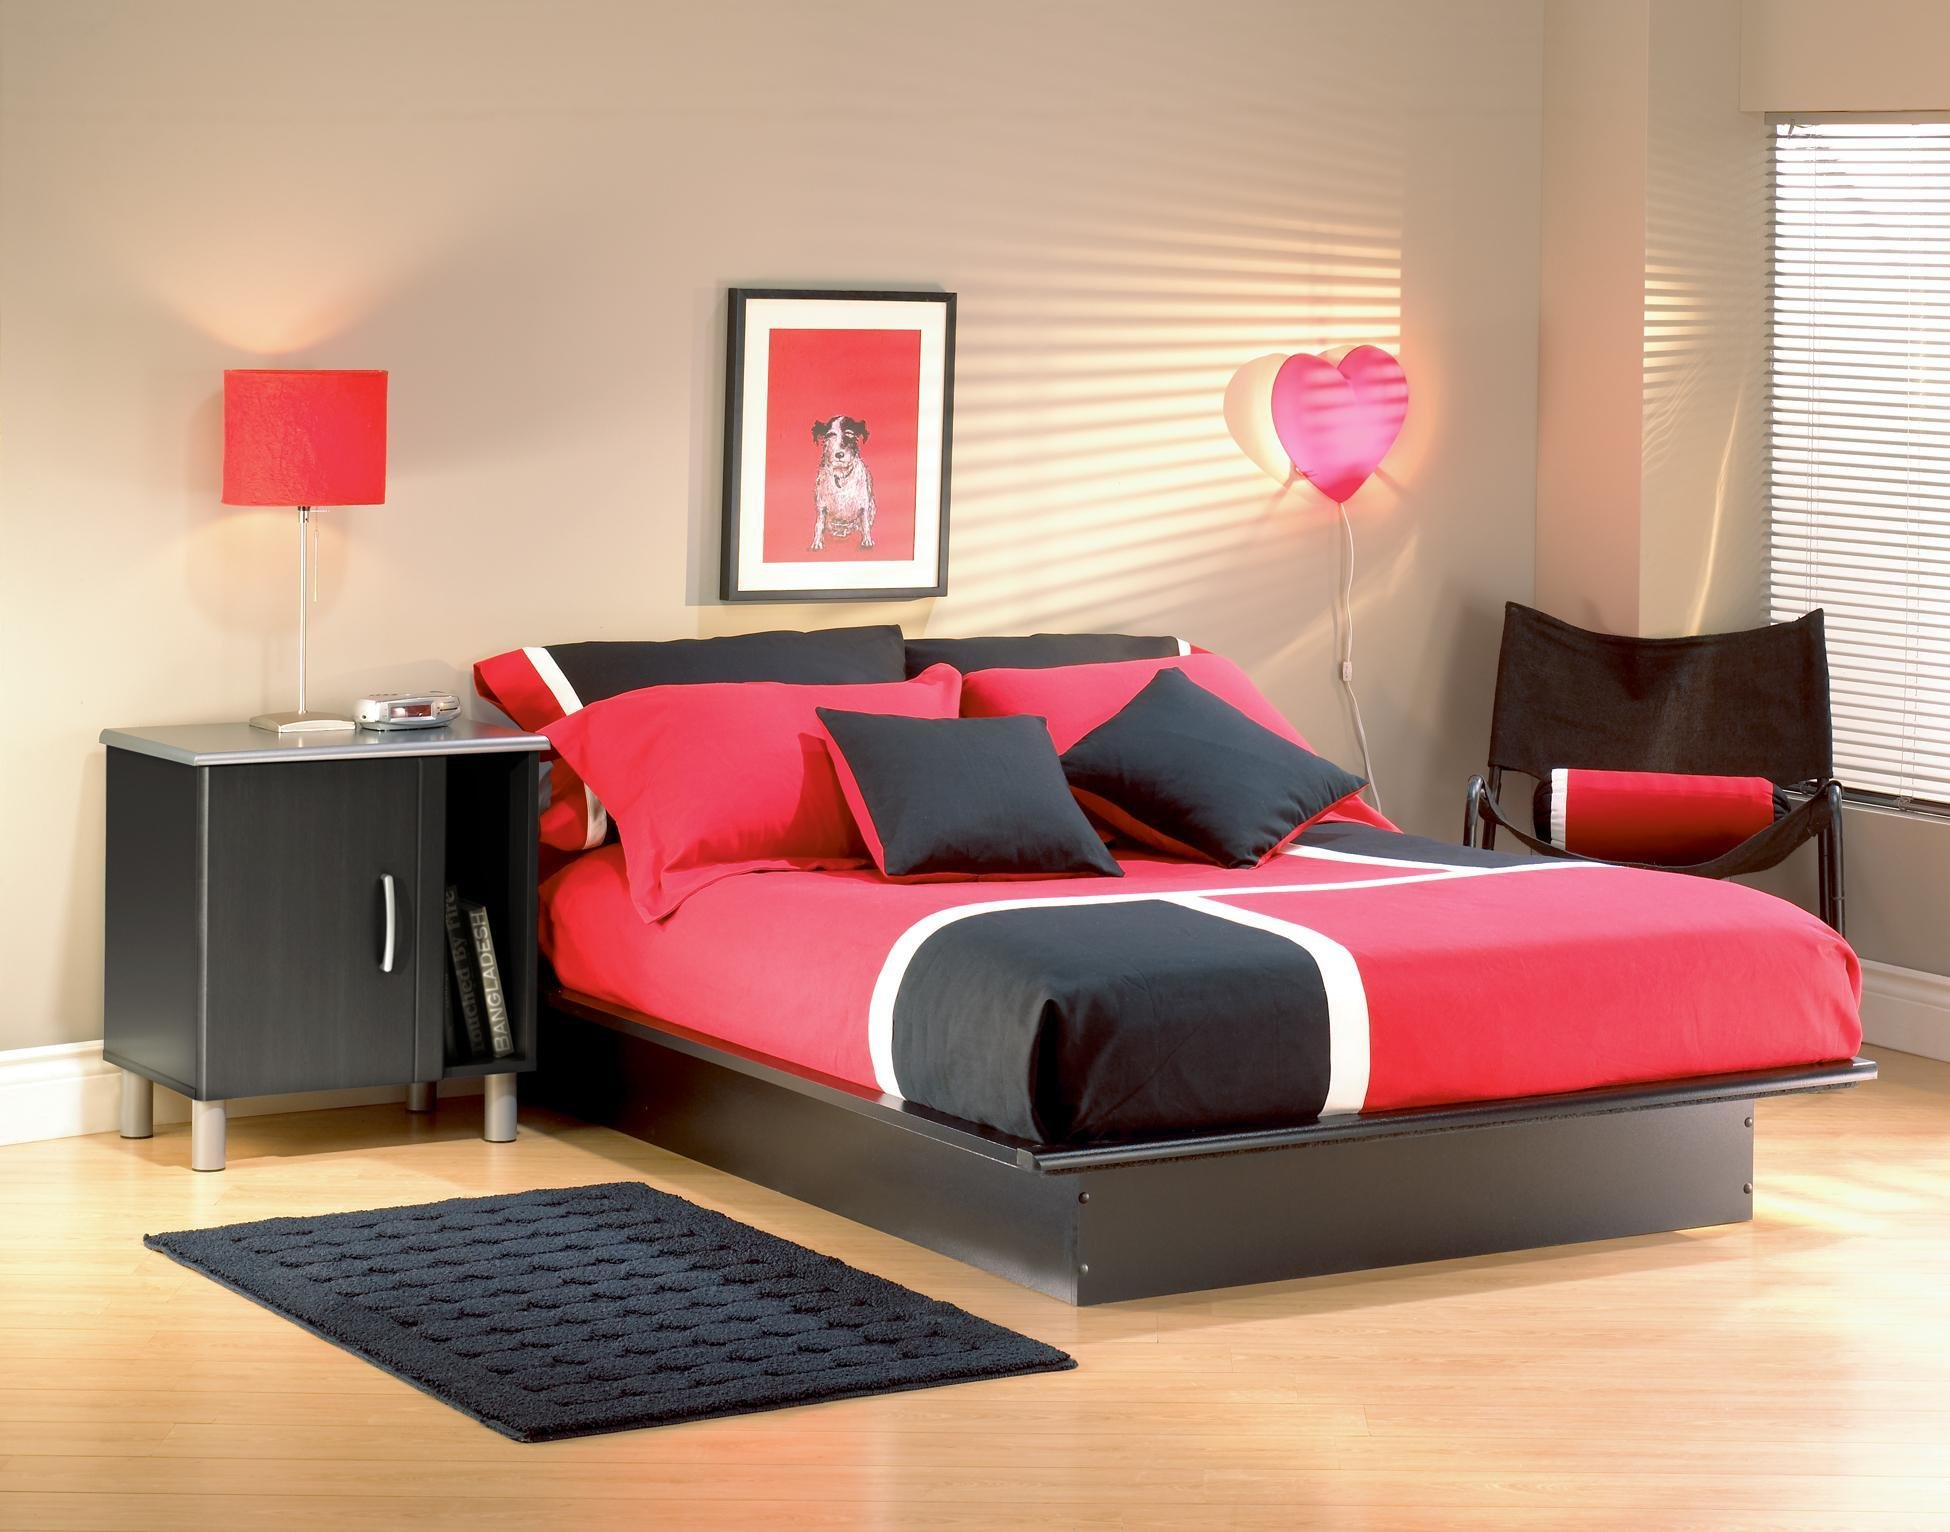 Best Step One Full Platform Bed With Night Stand 375 99 With Pictures